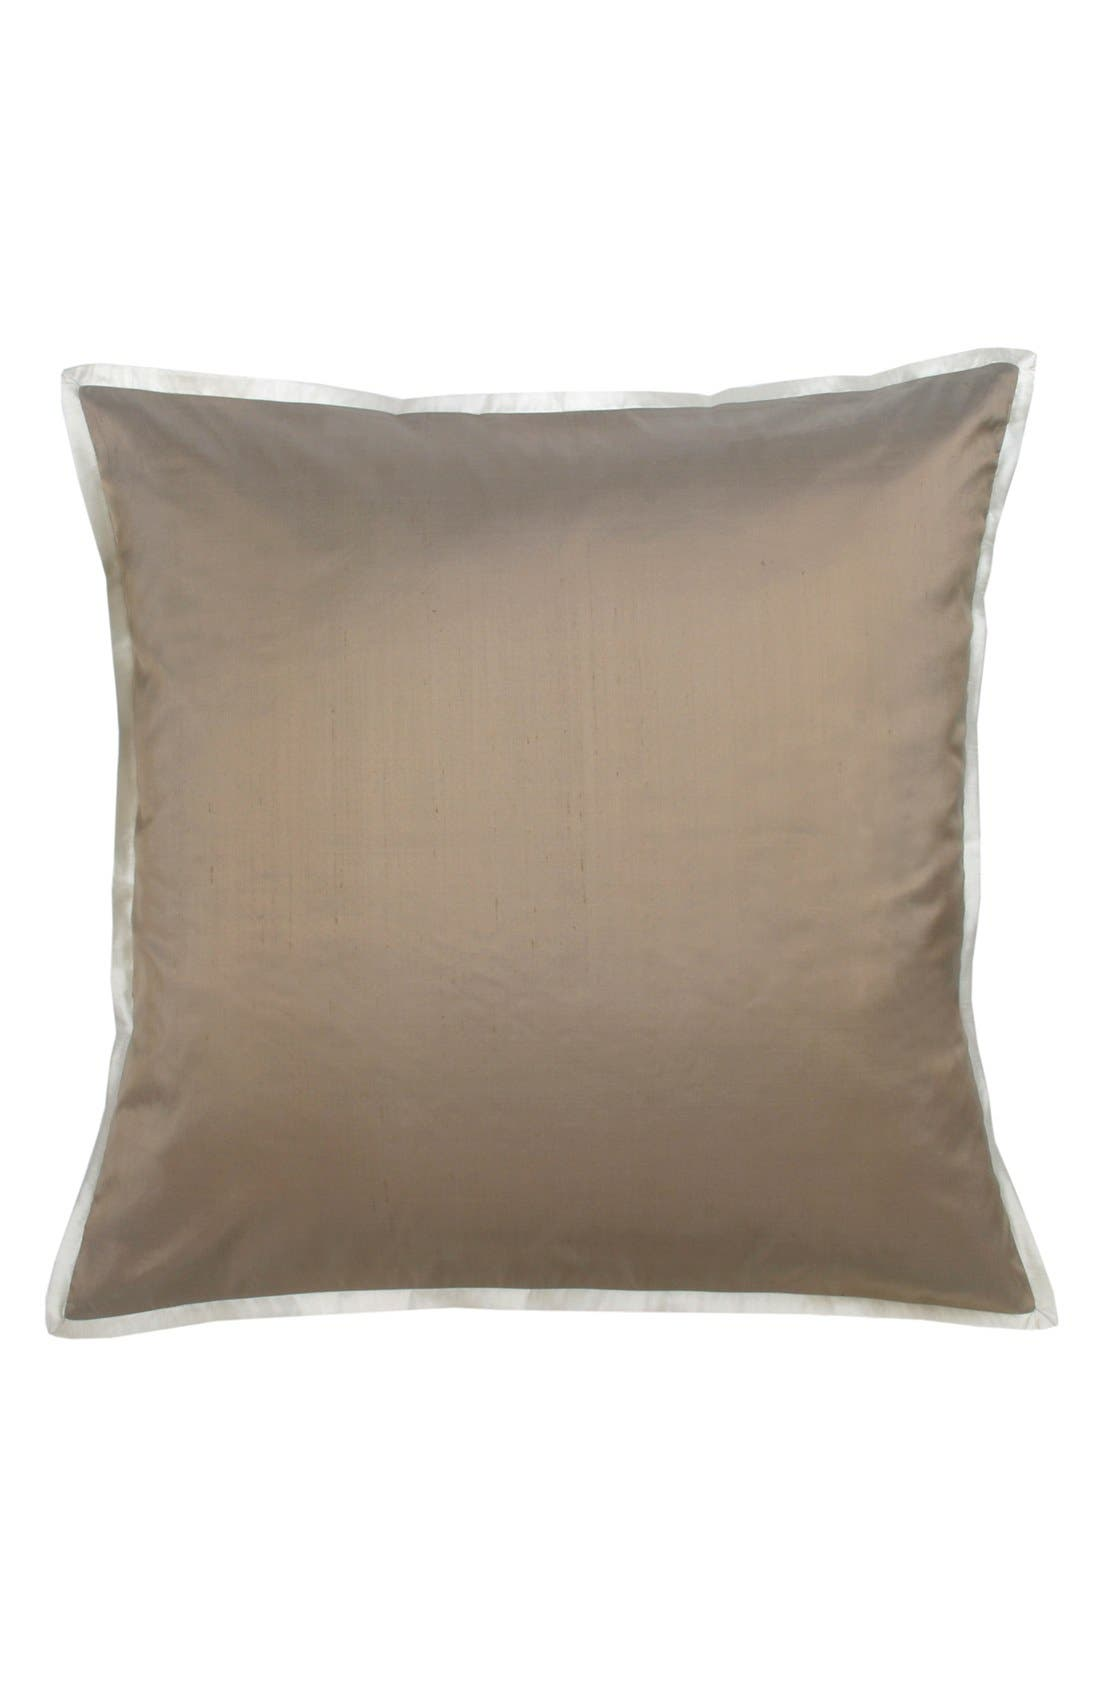 Alternate Image 1 Selected - Blissliving Home 'Lucca Bronze' Euro Pillow (Online Only)